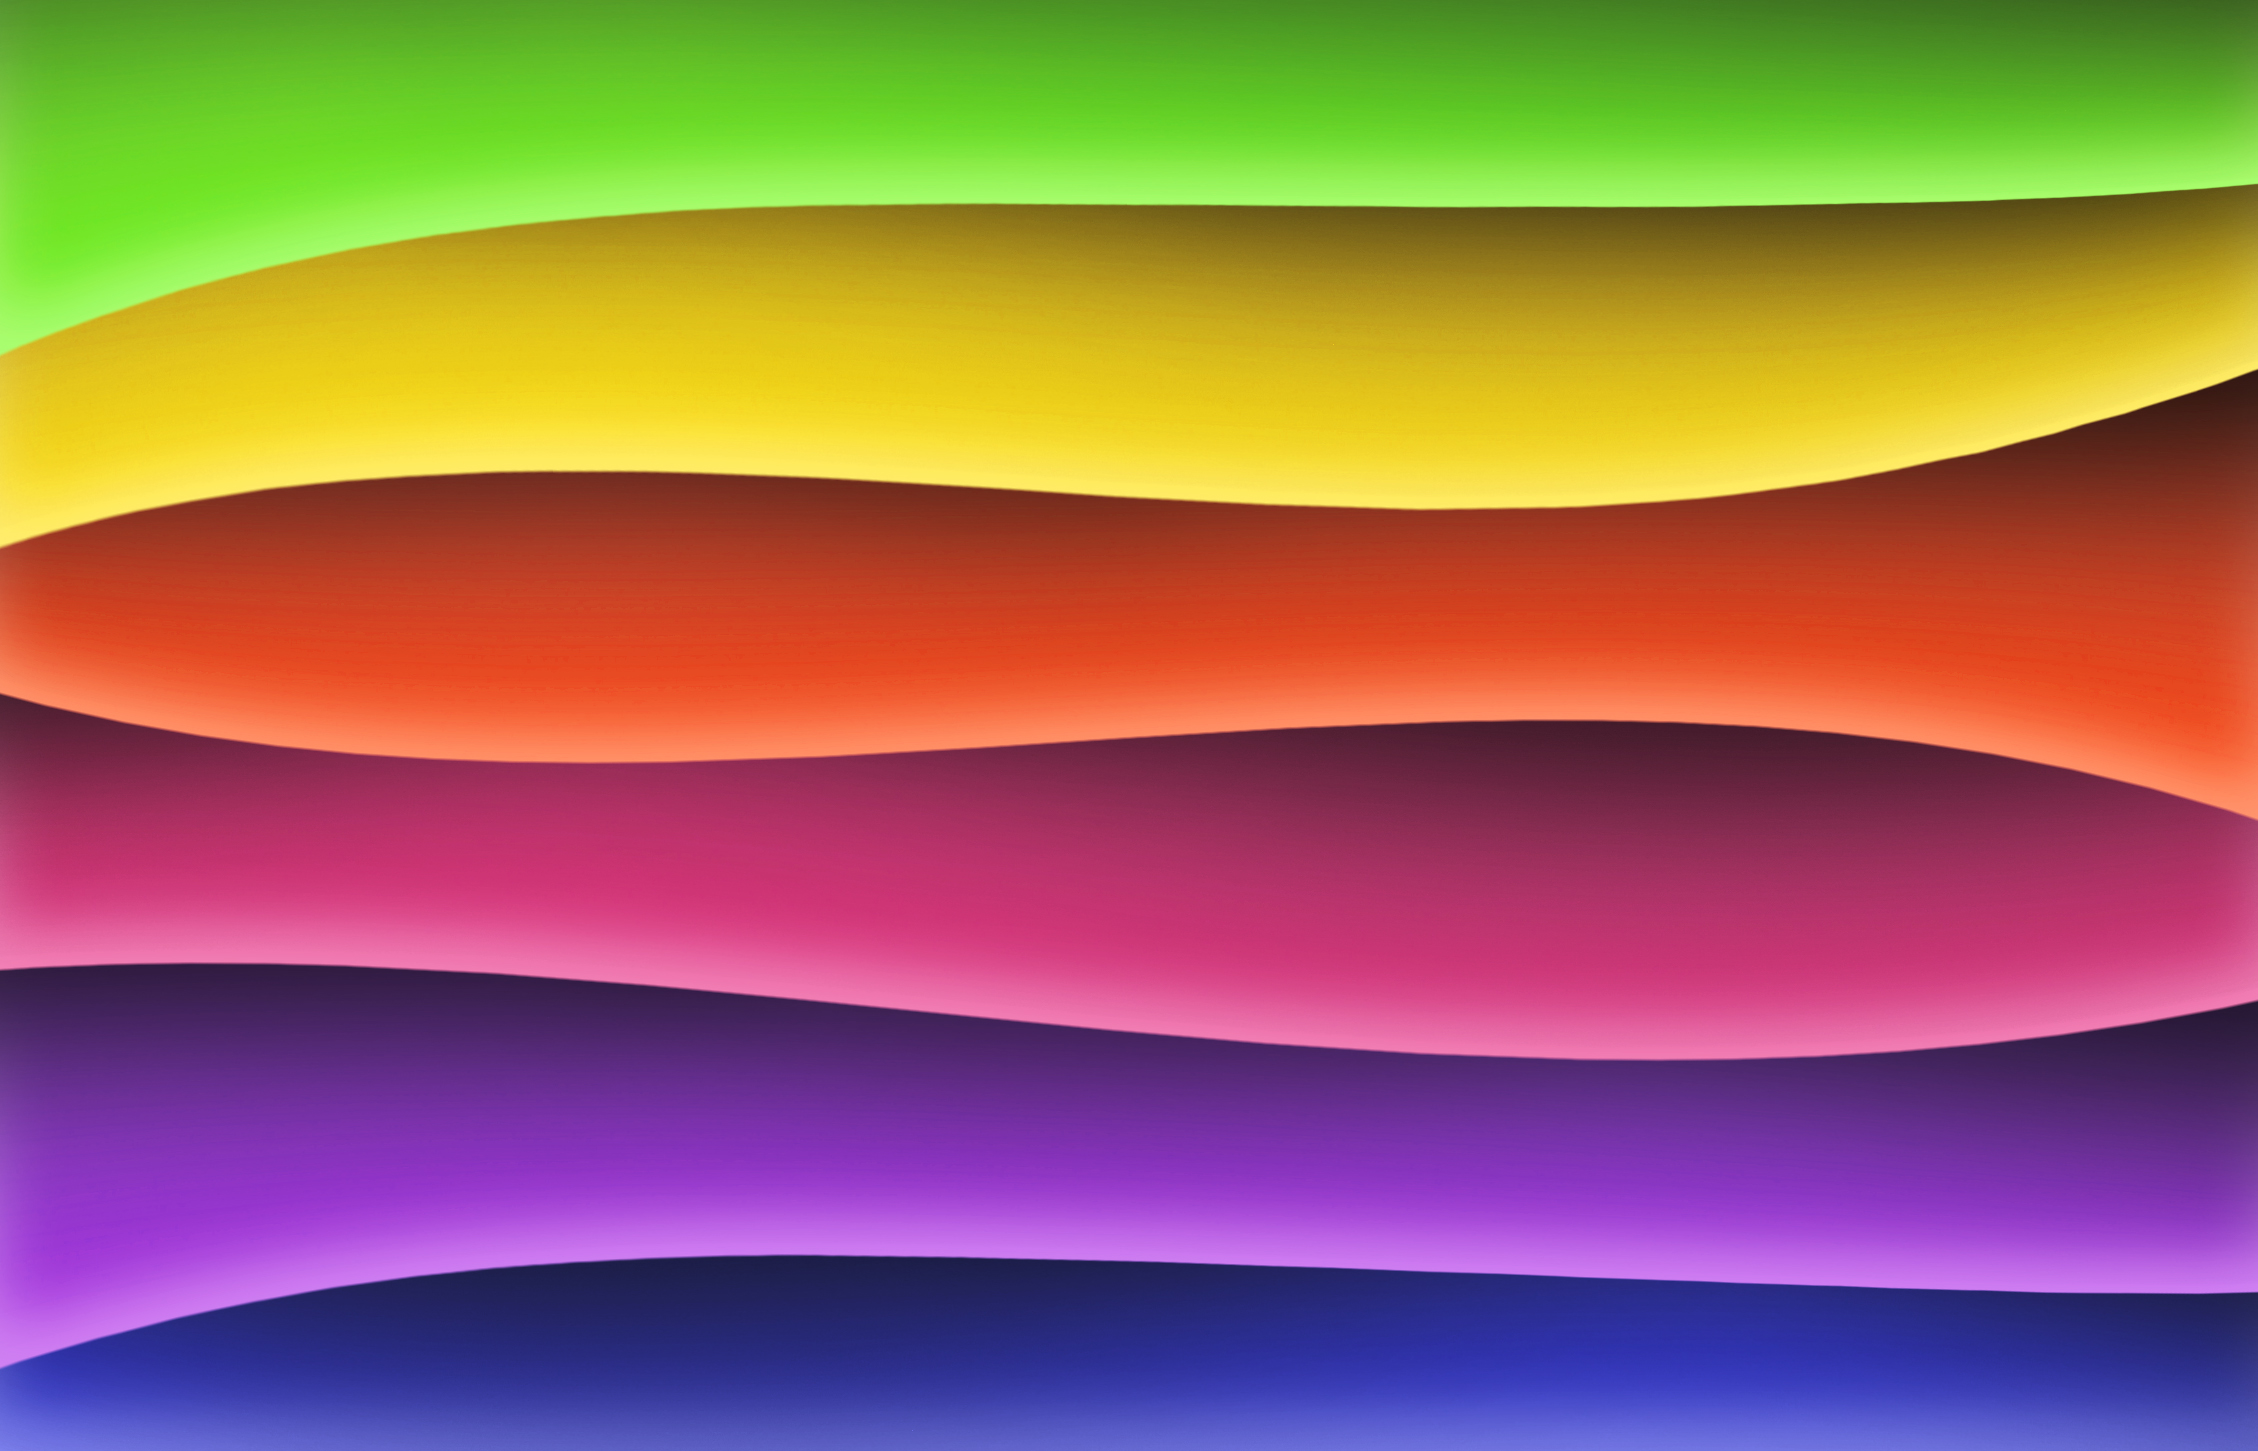 Rainbow waves wallpaper graphics photo